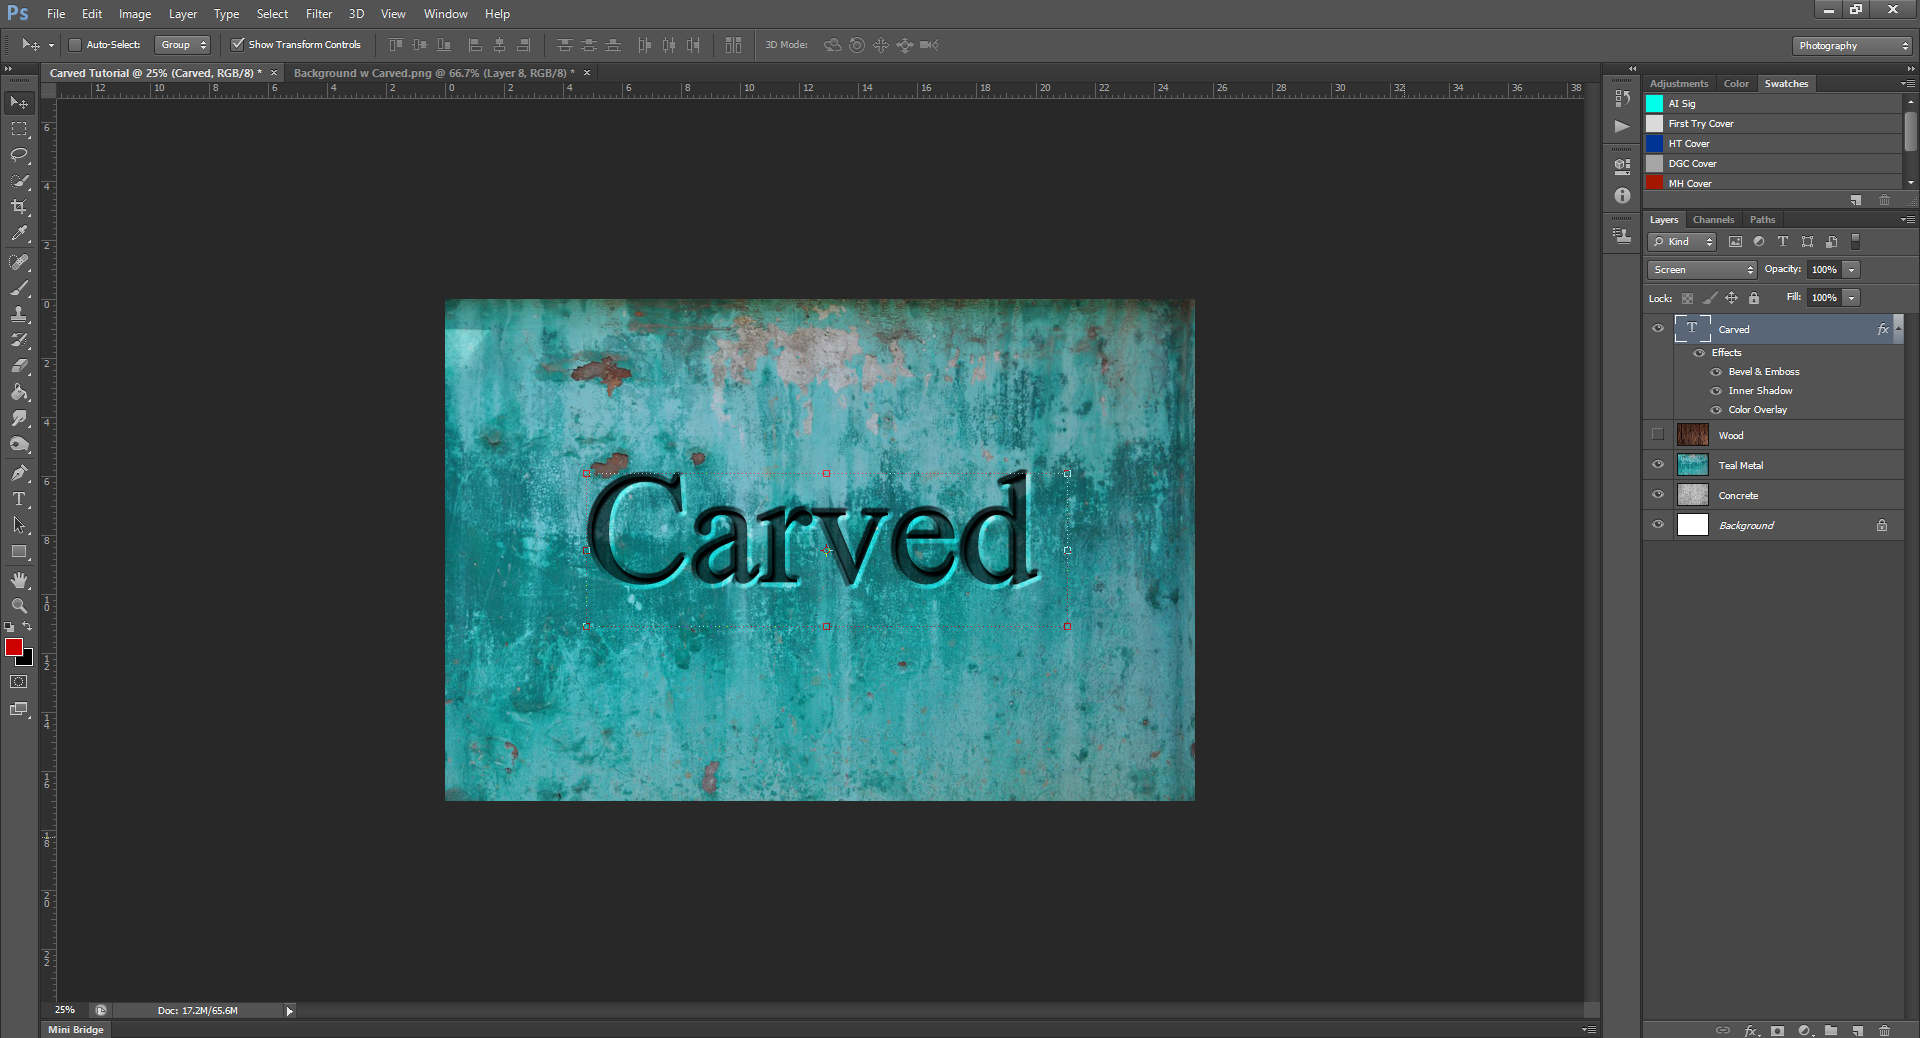 AterImber.com - Writing - Writing Tips - PHSH Effect Series - Carved Effect - Way 1 Carved Effect Done Teal - phsh effect, writing tips, book cover tips, indie author tips, self pub tips